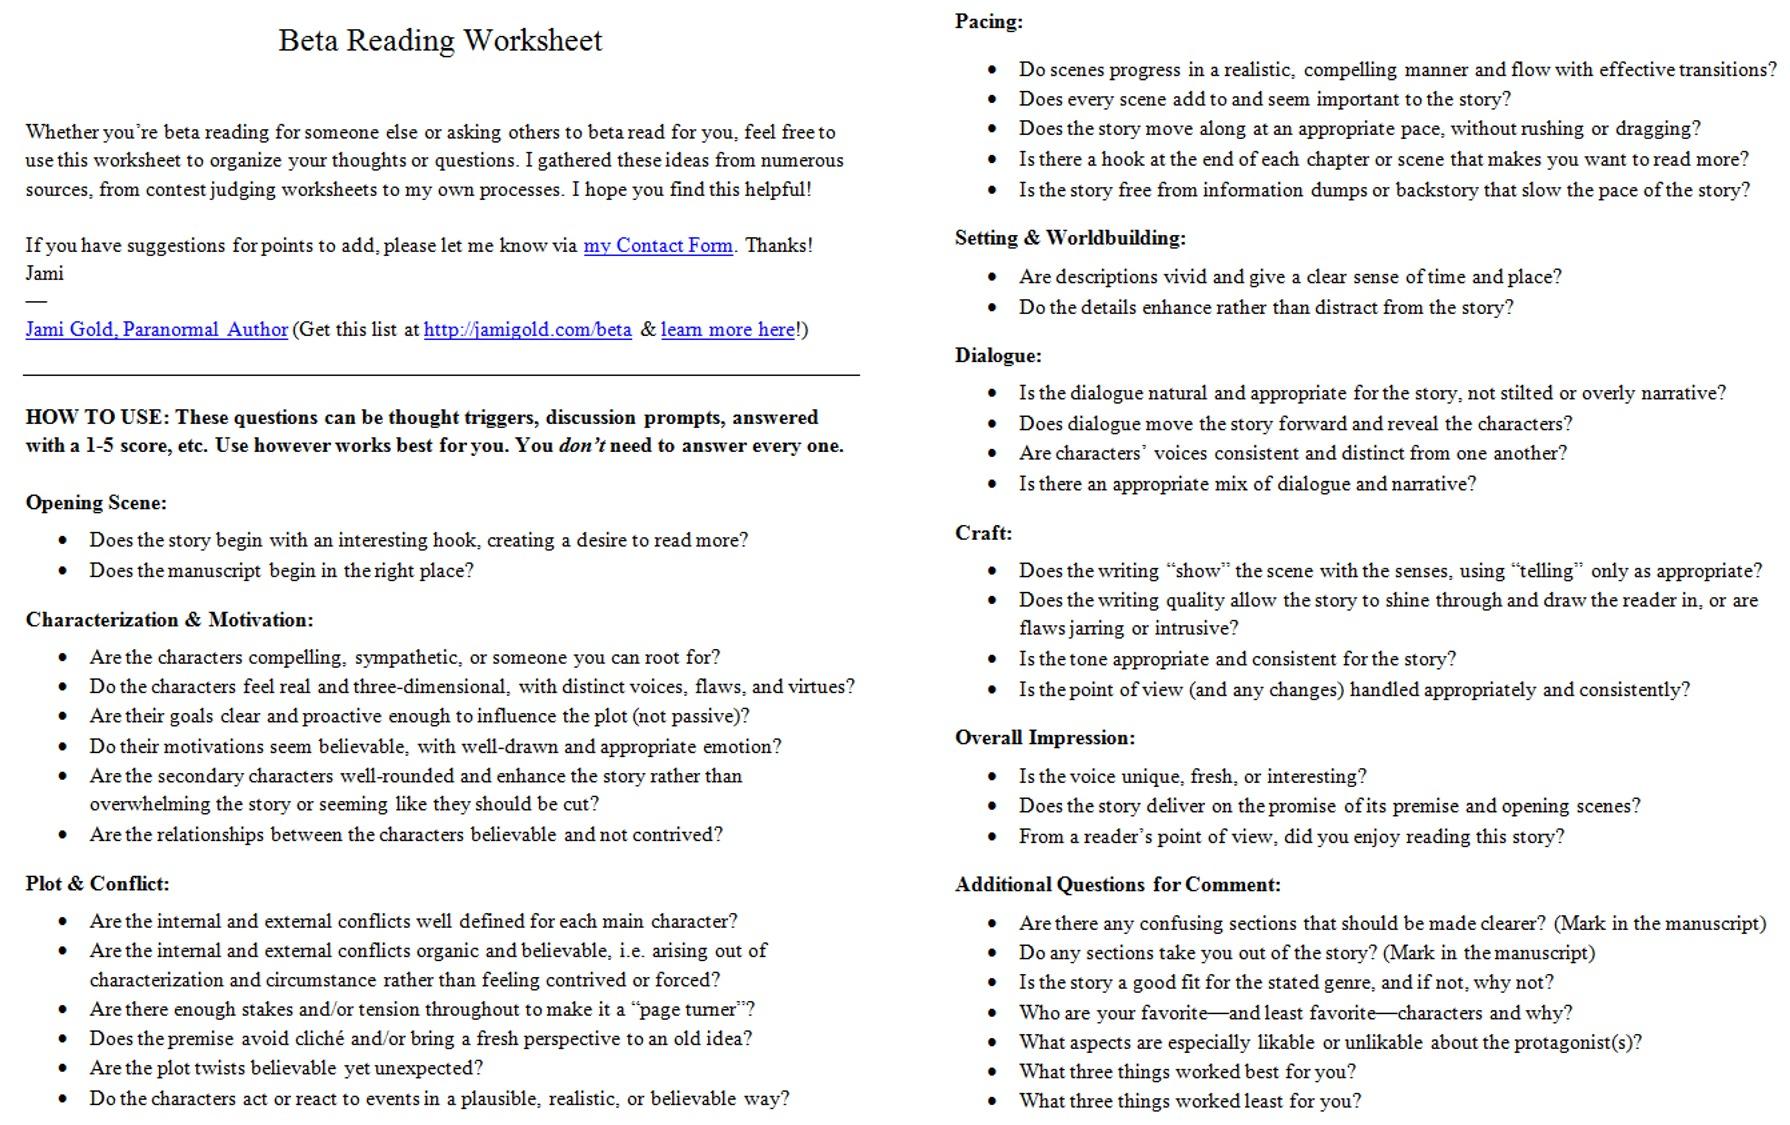 Aldiablosus  Wonderful Worksheets For Writers  Jami Gold Paranormal Author With Fascinating Screen Shot Of The Twopage Beta Reading Worksheet With Amazing Division Worksheets For Nd Grade Also Composite Risk Management Worksheet Example In Addition Decimal Addition Worksheet And Preschool Worksheets Shapes As Well As Second Grade Worksheets Reading Additionally Long Division Worksheets Rd Grade From Jamigoldcom With Aldiablosus  Fascinating Worksheets For Writers  Jami Gold Paranormal Author With Amazing Screen Shot Of The Twopage Beta Reading Worksheet And Wonderful Division Worksheets For Nd Grade Also Composite Risk Management Worksheet Example In Addition Decimal Addition Worksheet From Jamigoldcom